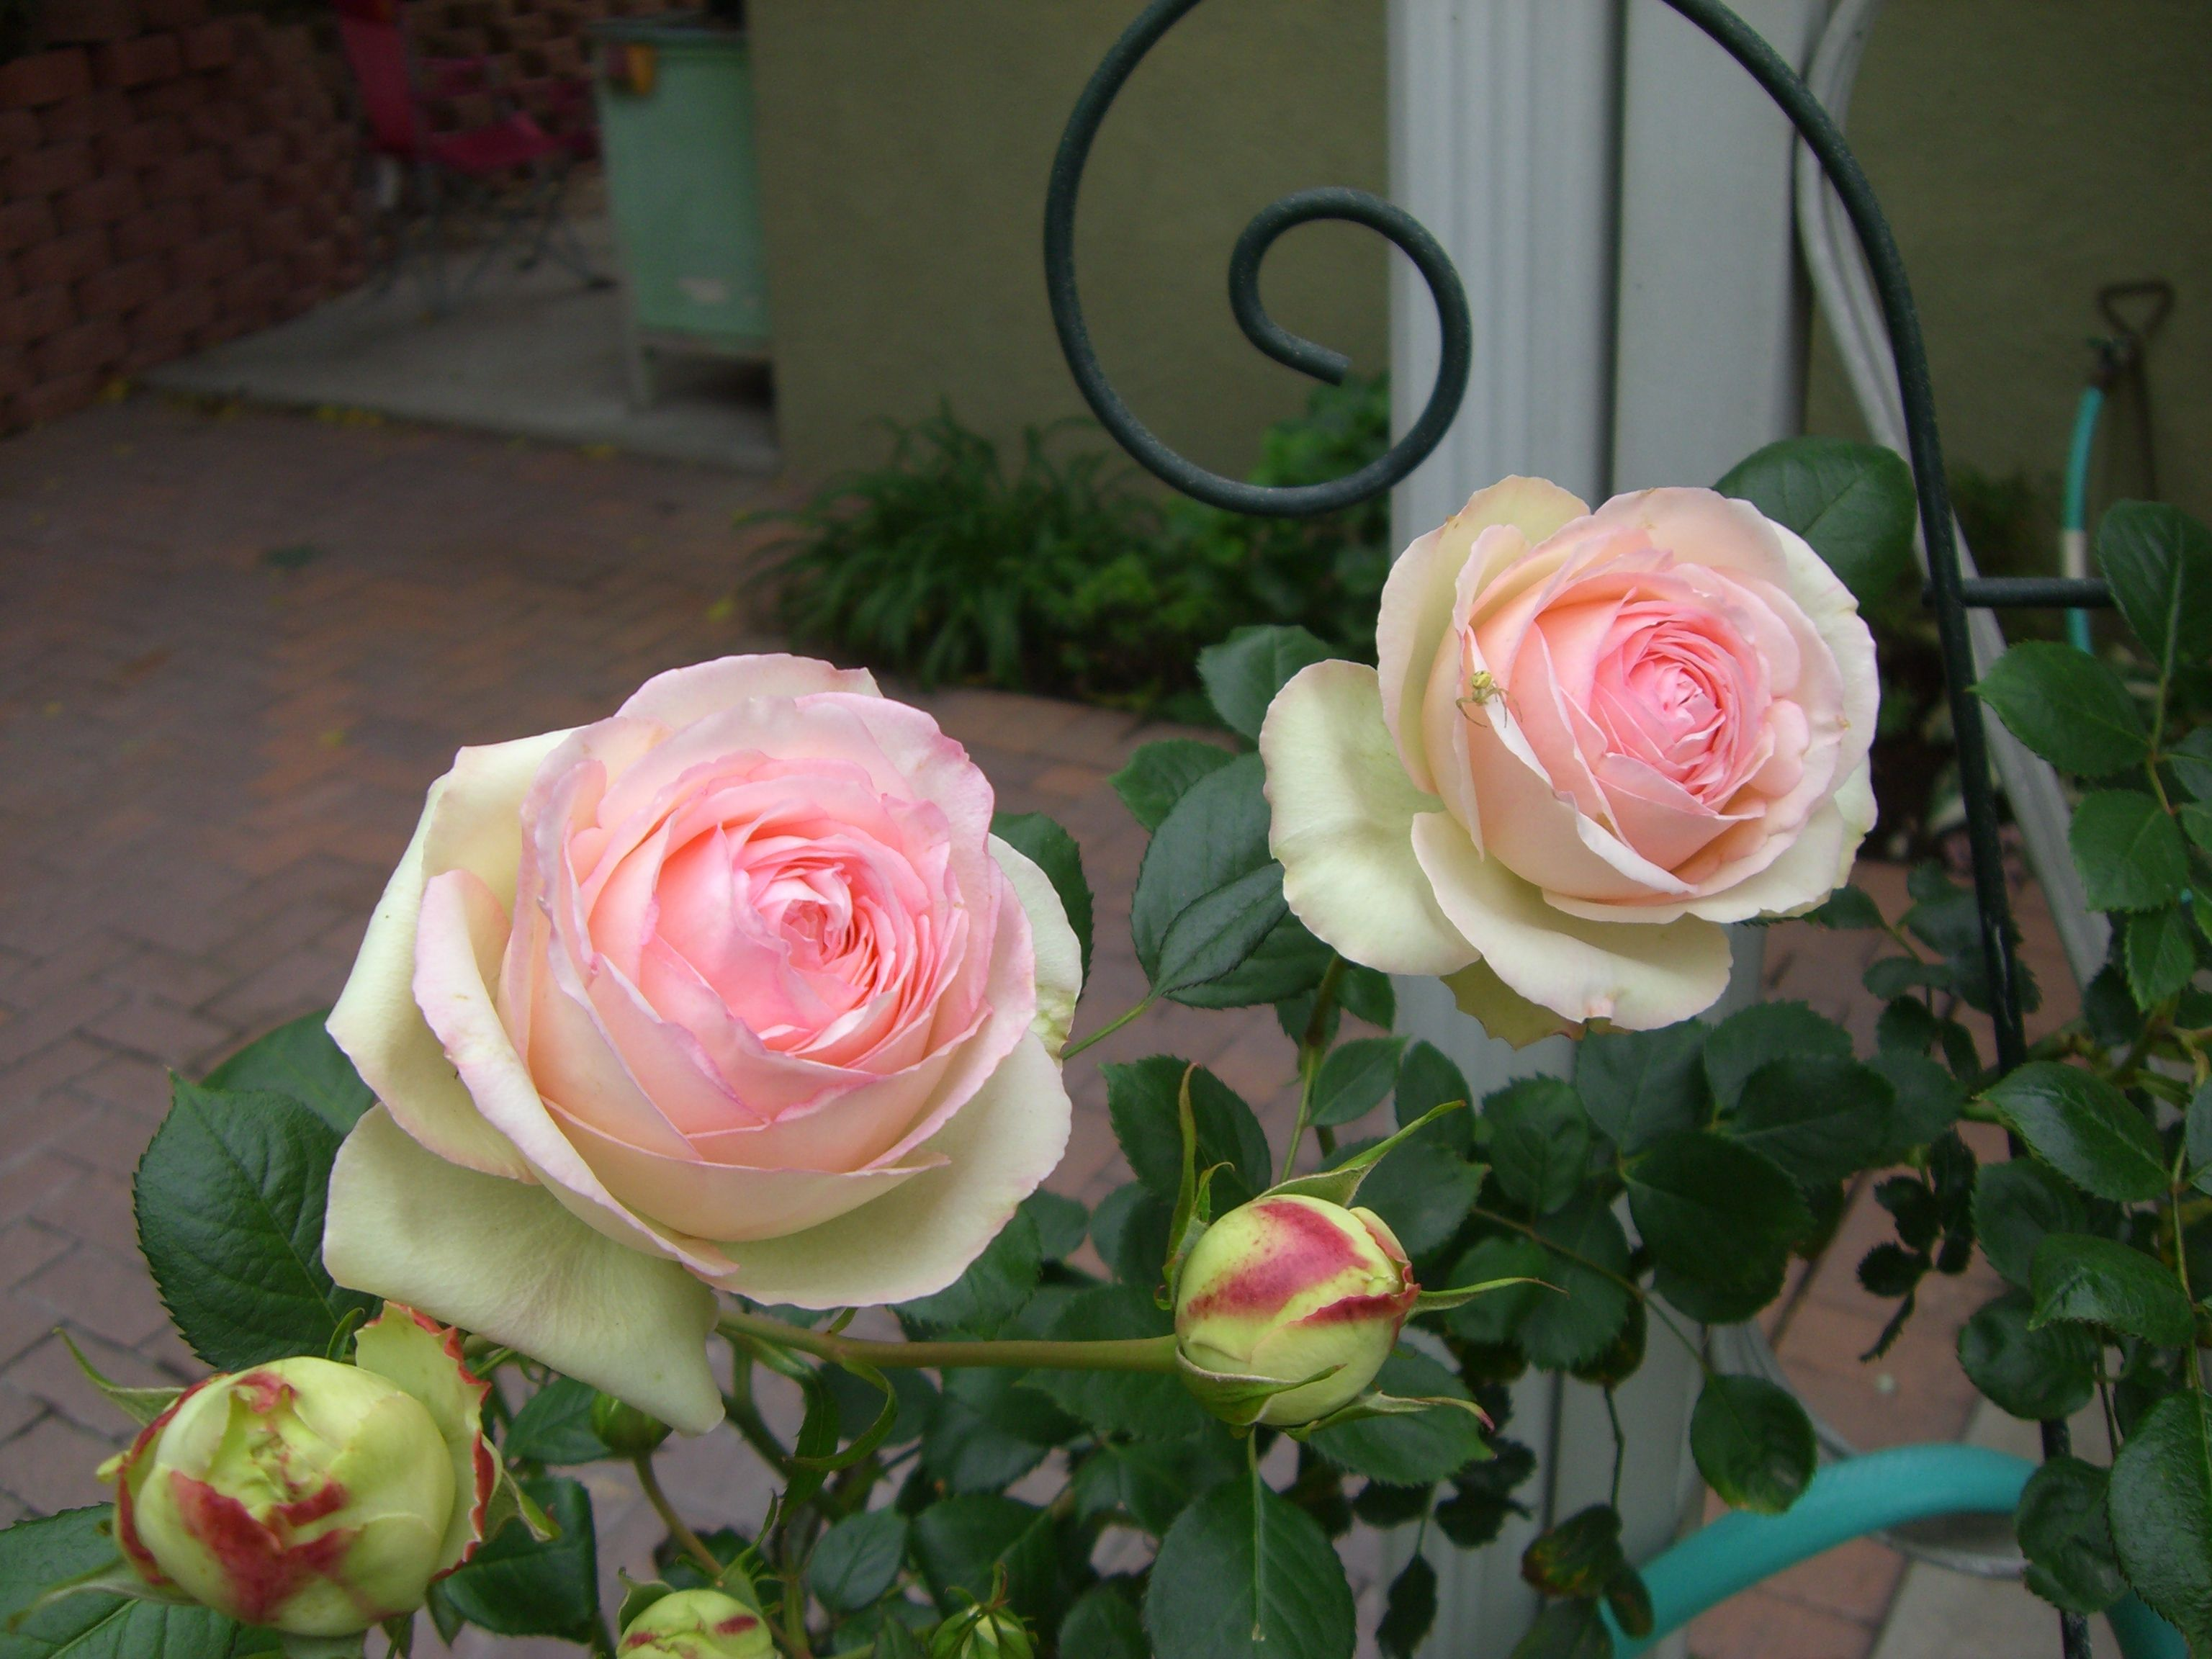 Eden roses this is my favorite it isnut a cutting rose though the